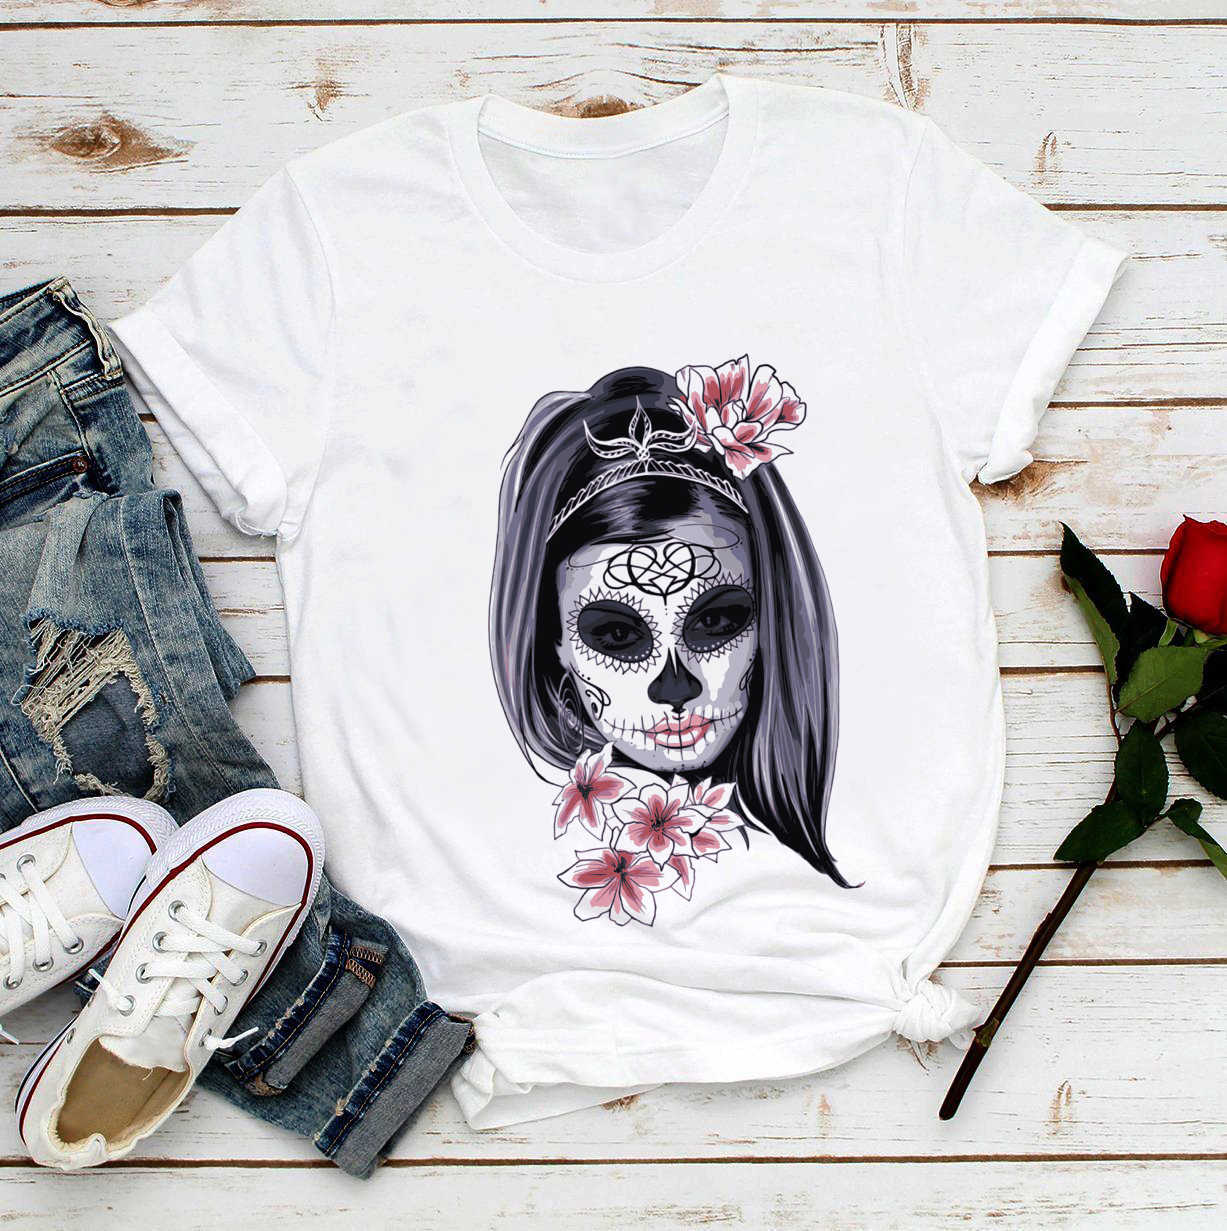 Donne T-Shirt Divertente day of the dead t-shirt del cranio dello zucchero del cranio dello zucchero estate delle donne di nuovo bianco casual dolce kawaii t-shirt delle donne